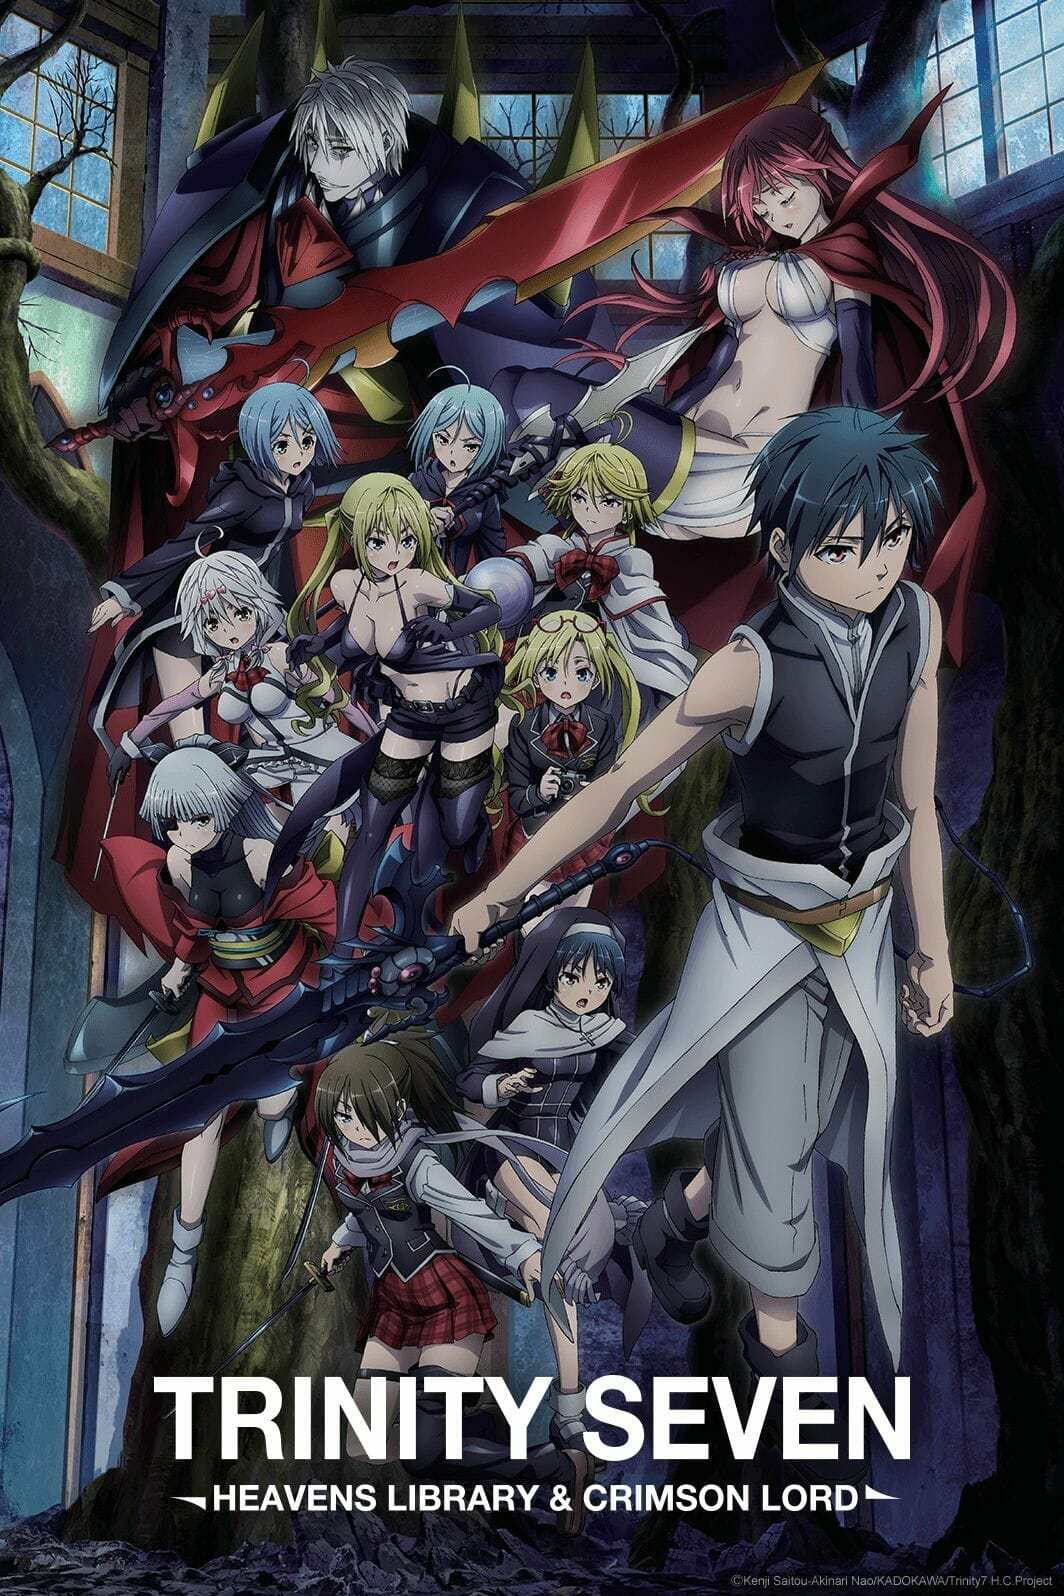 TRINITY SEVEN HEAVENS LIBRARY and Crimson Lord Anime Film Visual